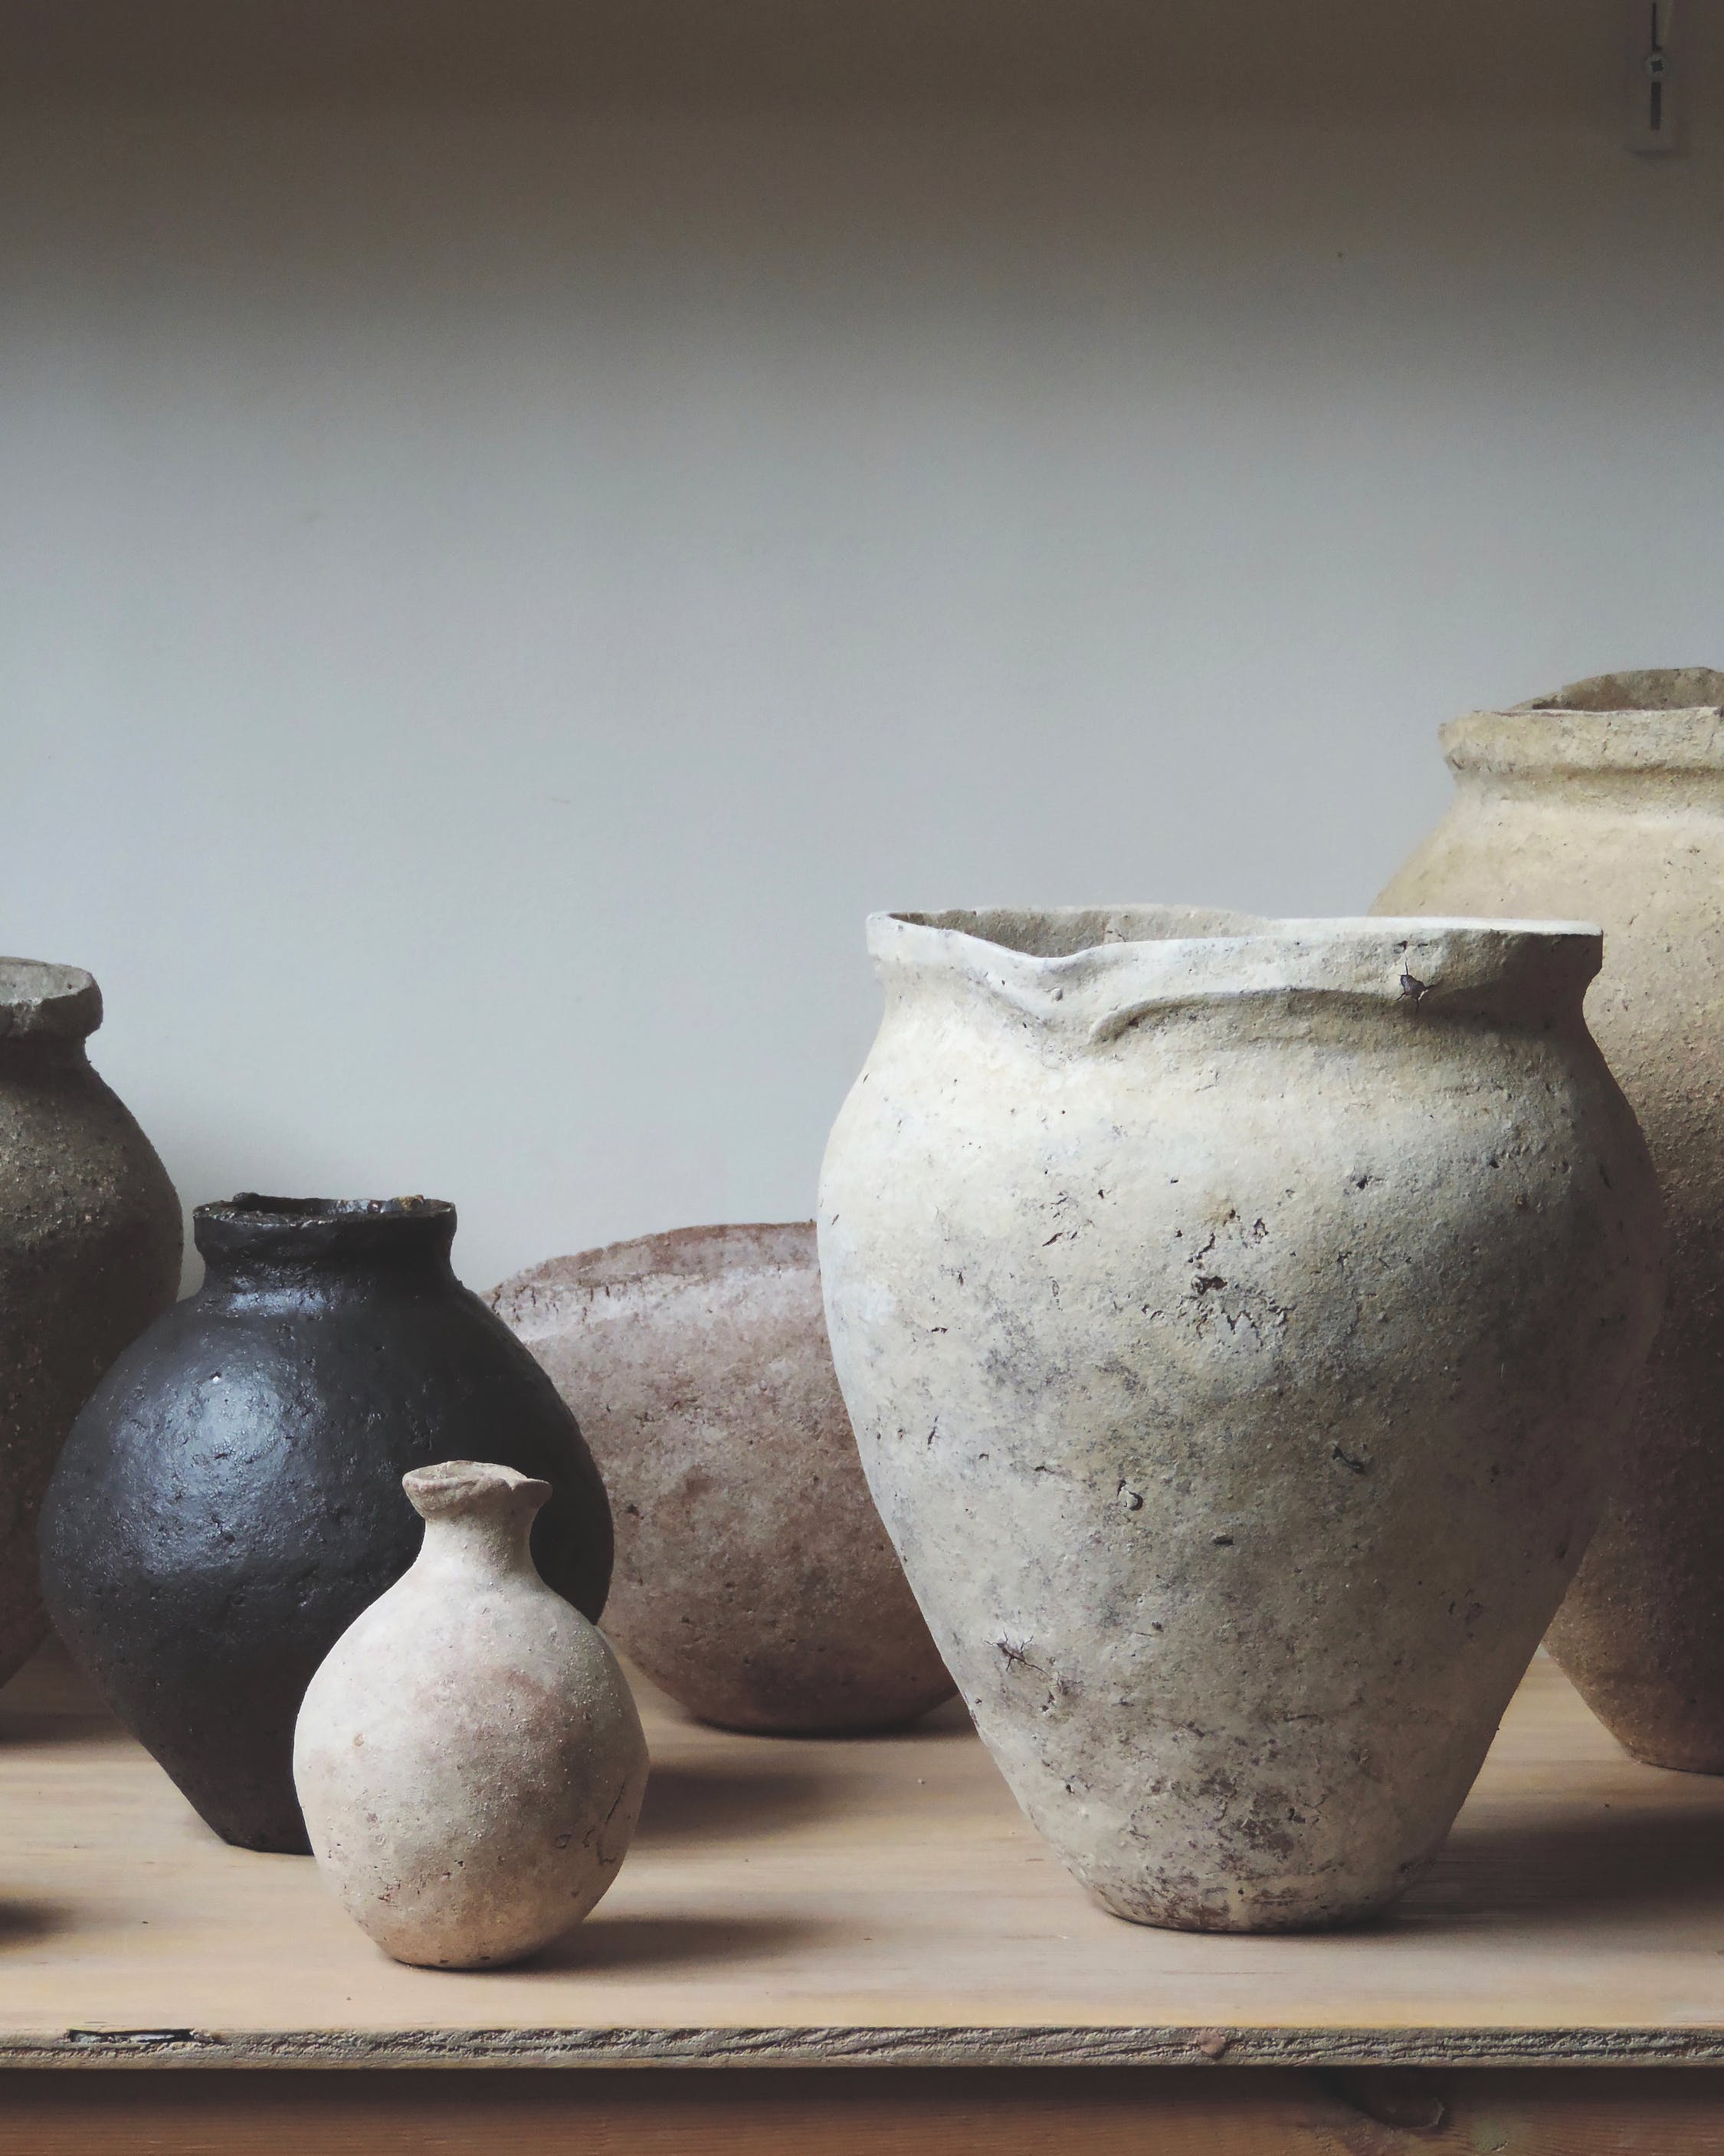 Series of textured ceramic vessels on wooden table